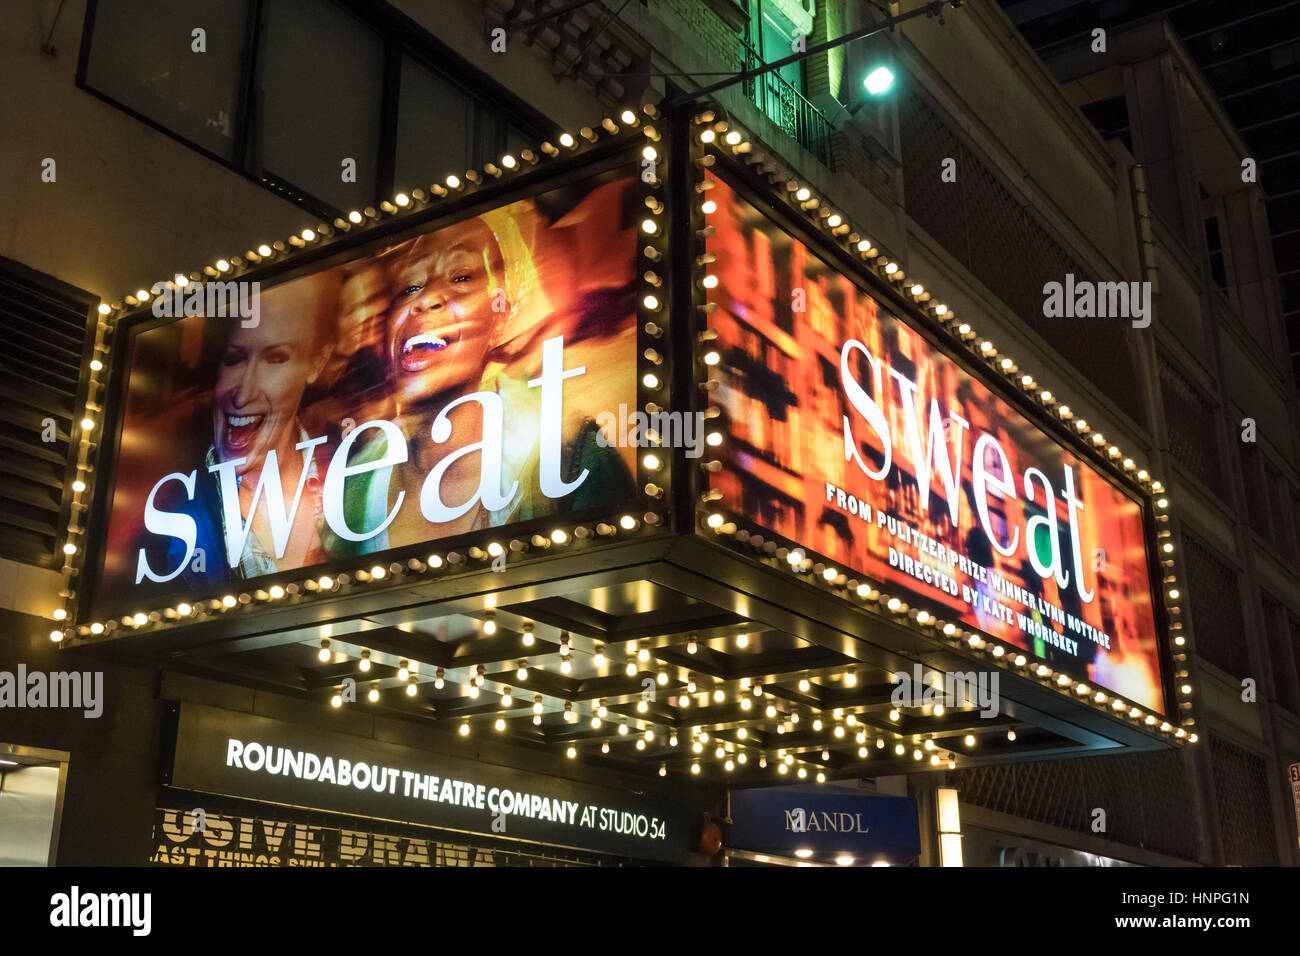 Sweat, drama that moved from Off-Broadway to Broadway - Stock Image